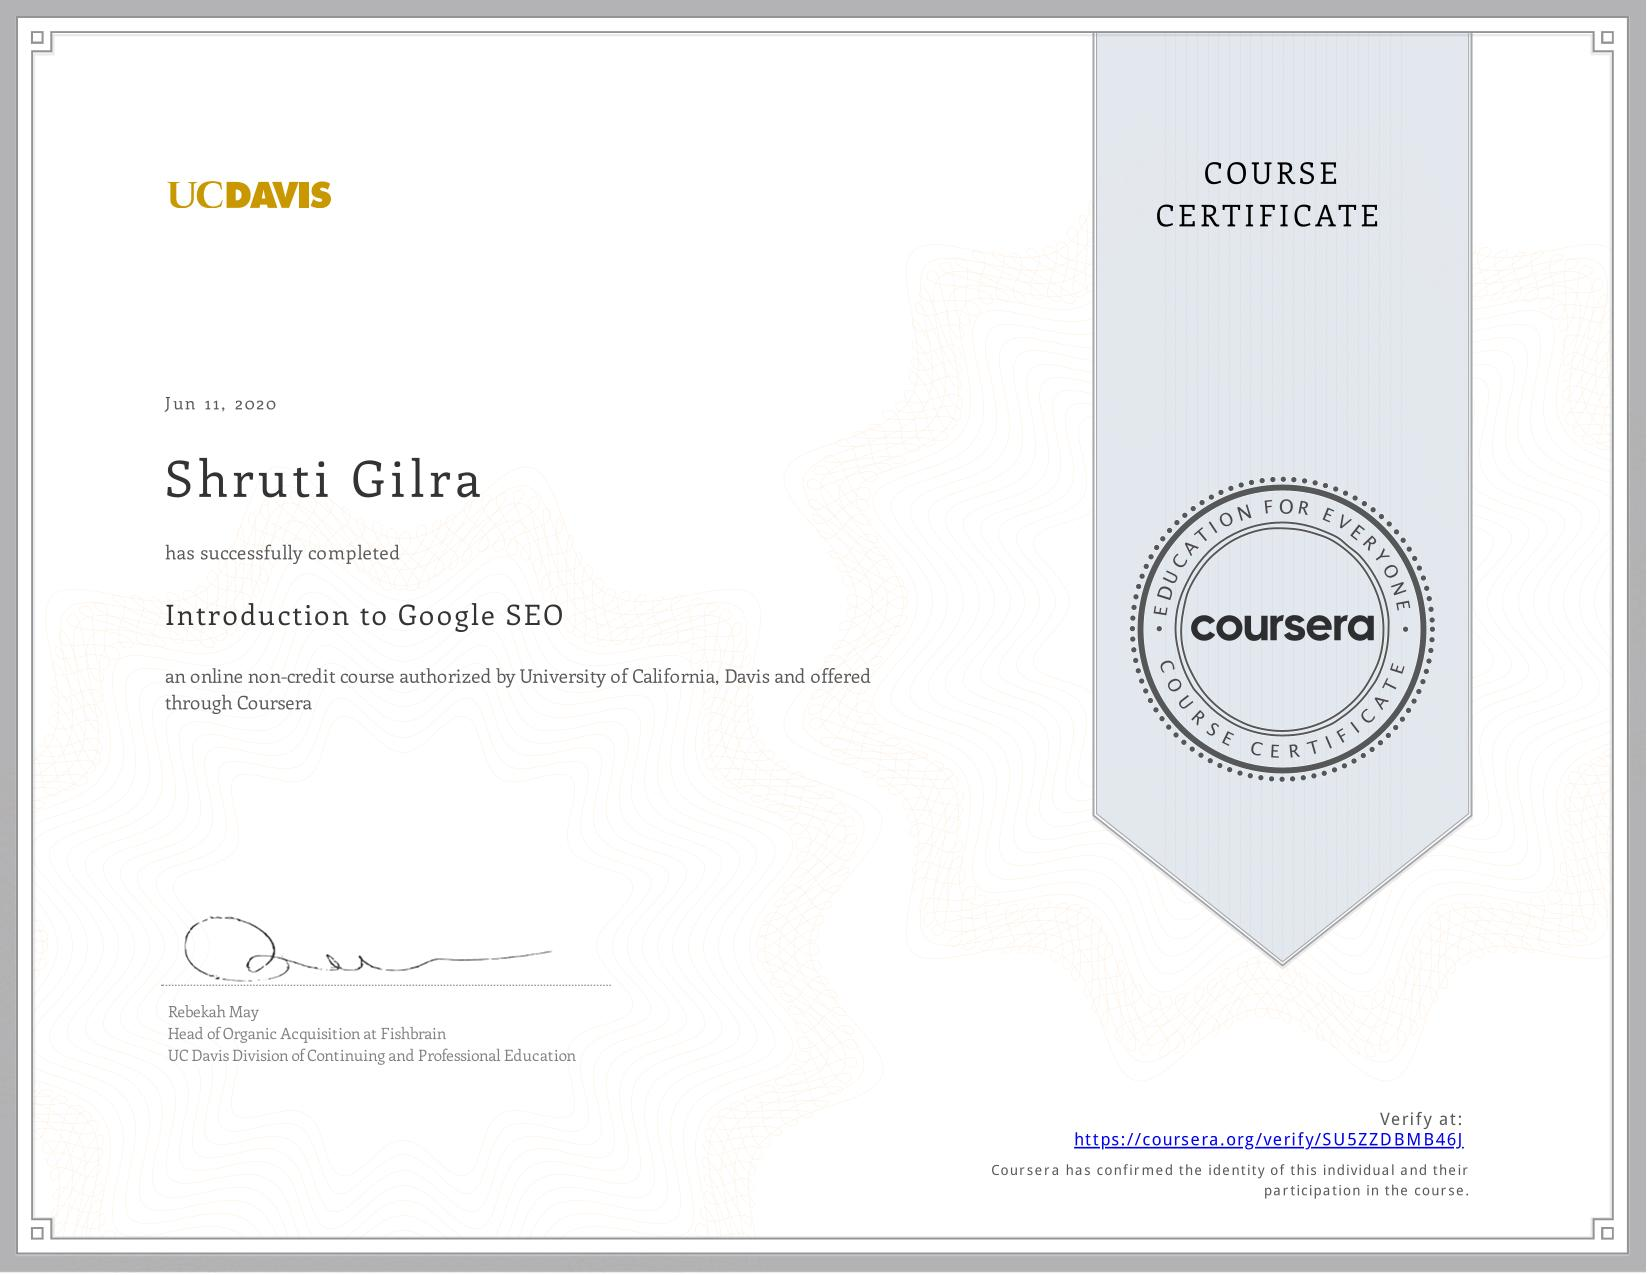 View certificate for Shruti Gilra, Introduction to Search Engine Optimization, an online non-credit course authorized by University of California, Davis and offered through Coursera